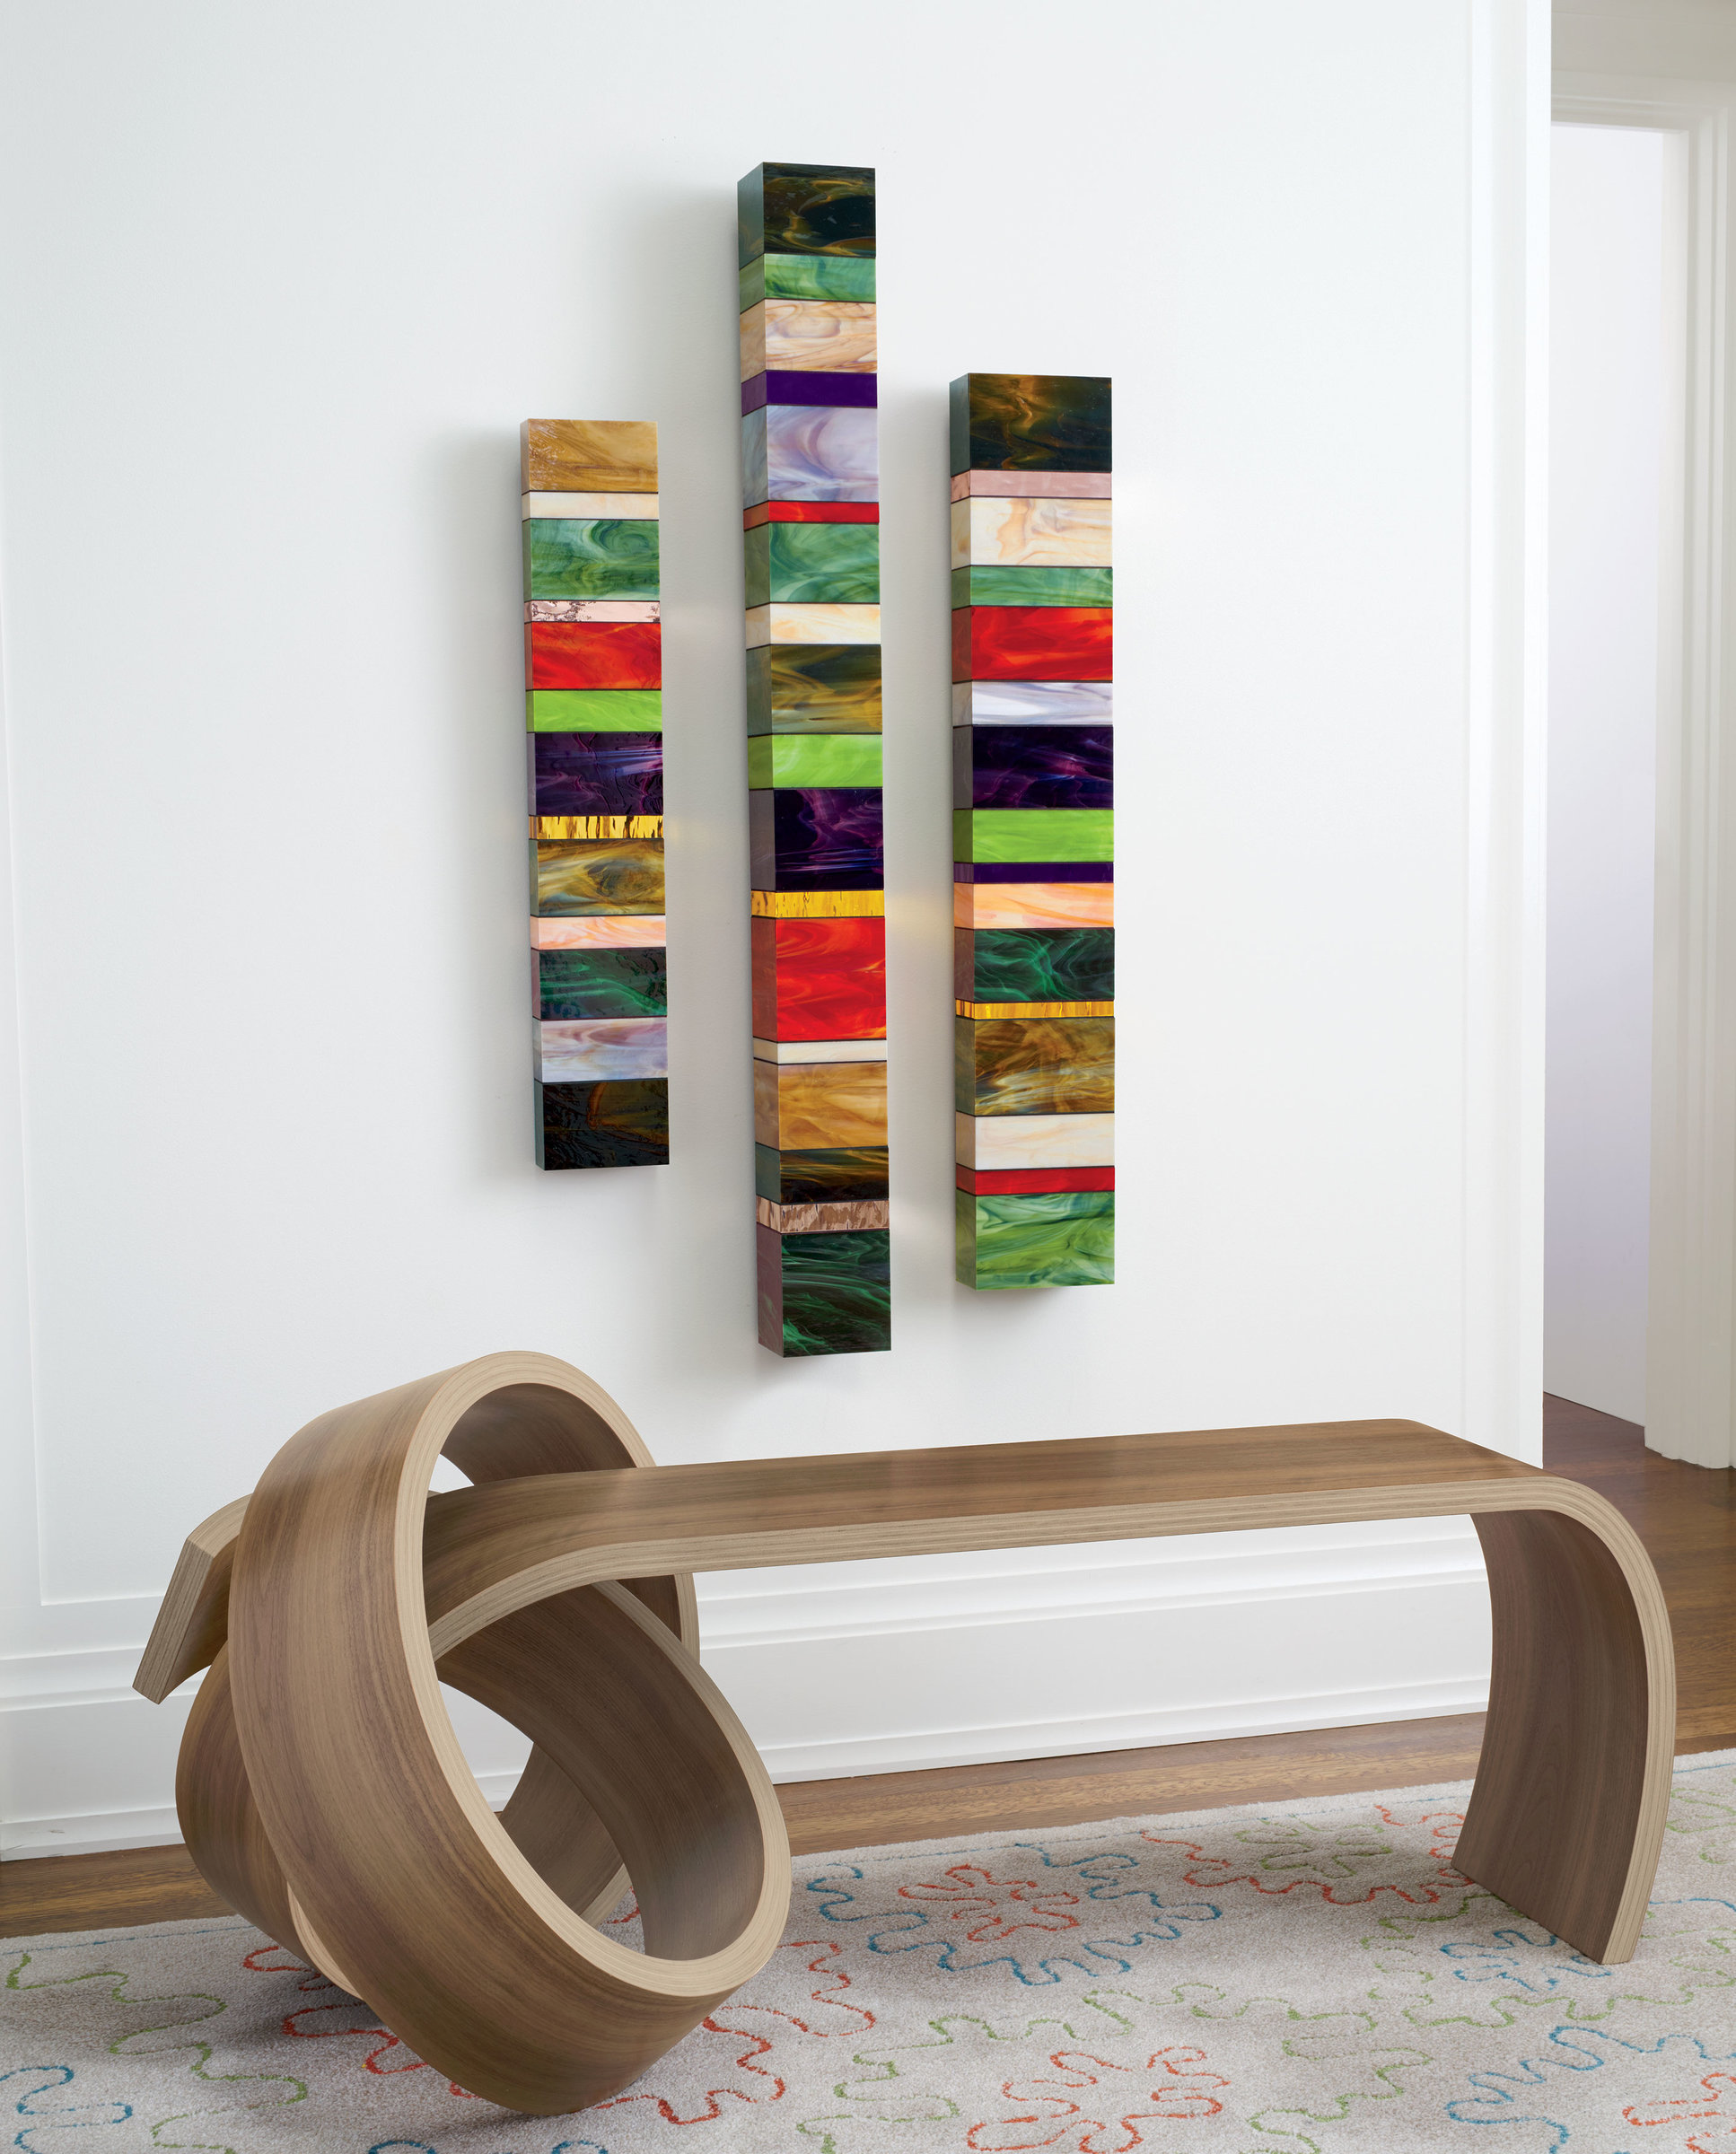 Marvelous photograph of Why Knot Bench by Kino Guerin (Wood Bench) Artful Home with #AF1C1E color and 1934x2400 pixels